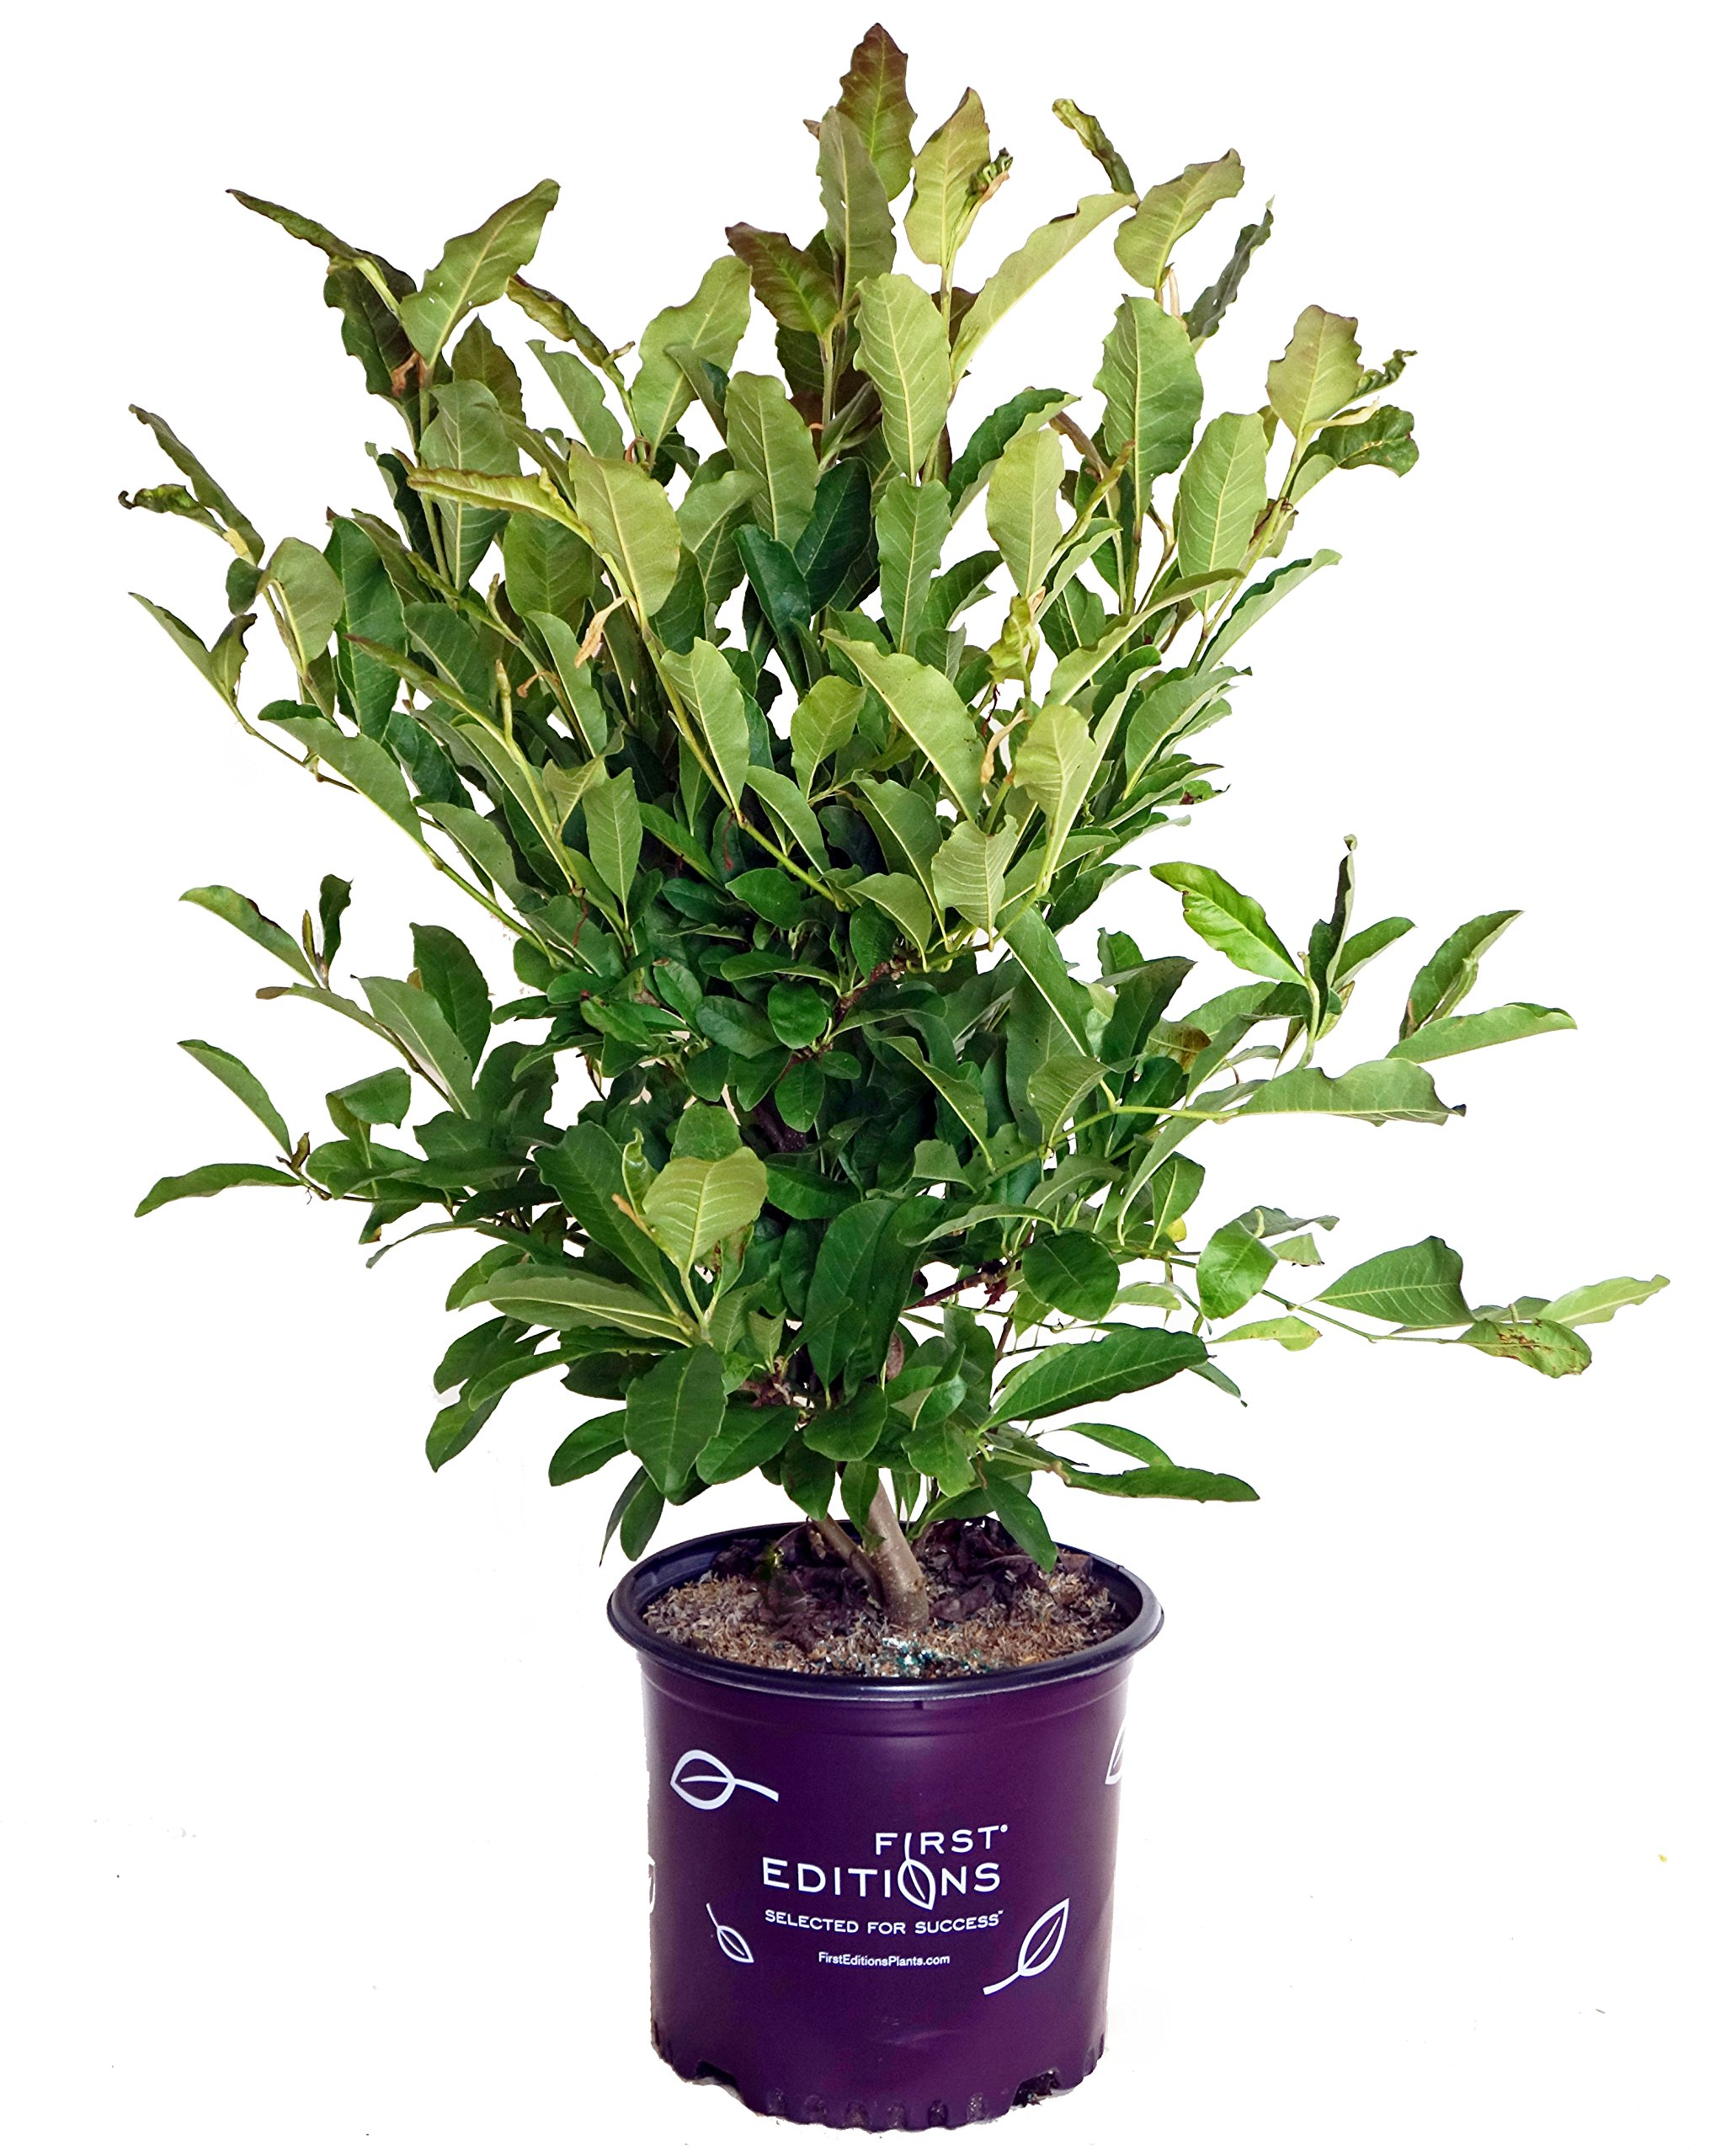 Green Promise Farms First Editions - Magnolia stellata Centennial Blush (Magnolia) Tree, light pink flowers, 3 - Size Container